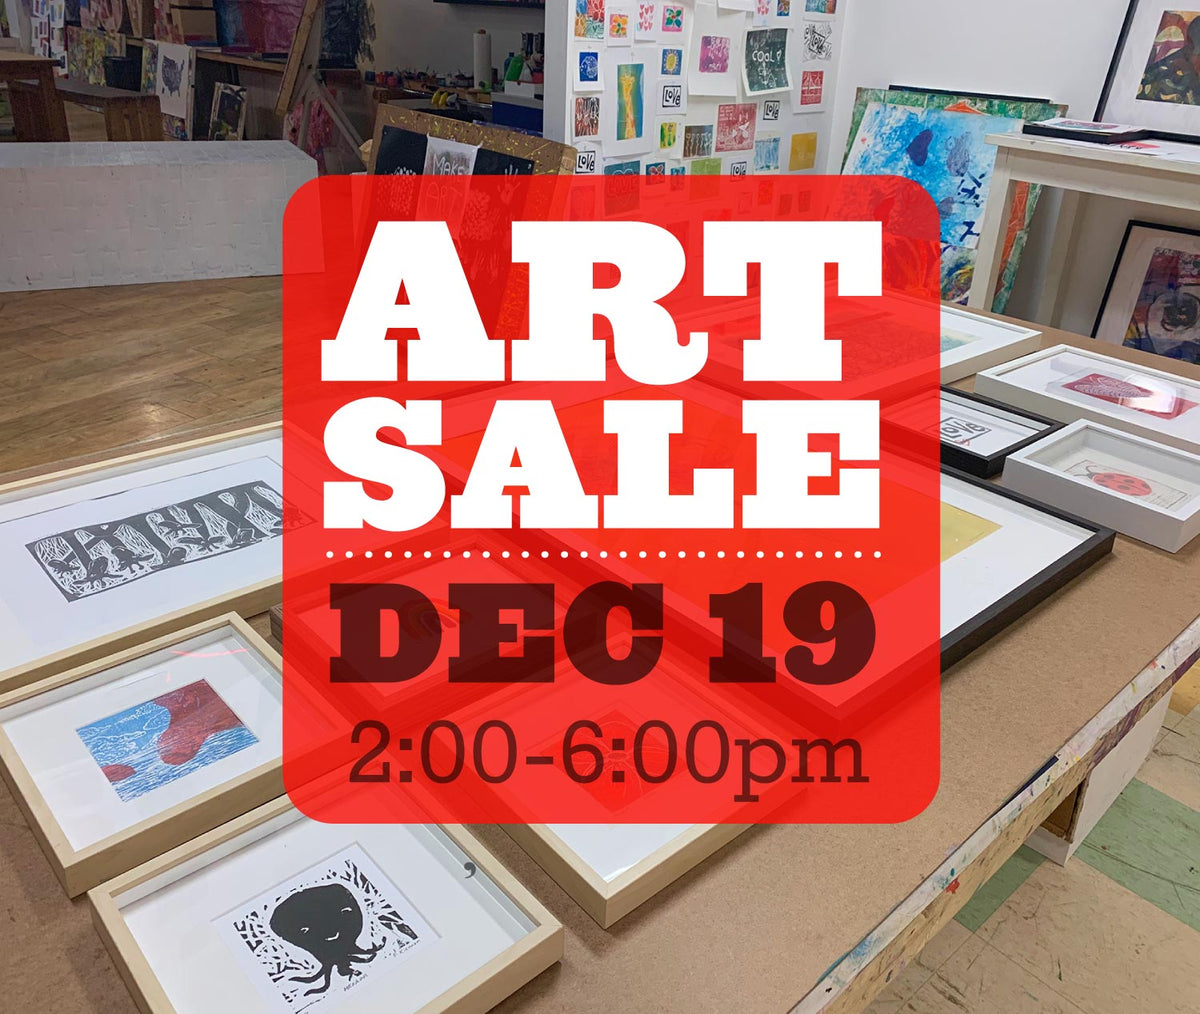 Art Sale, Saturday, Dec 19 2:00-6:00pm